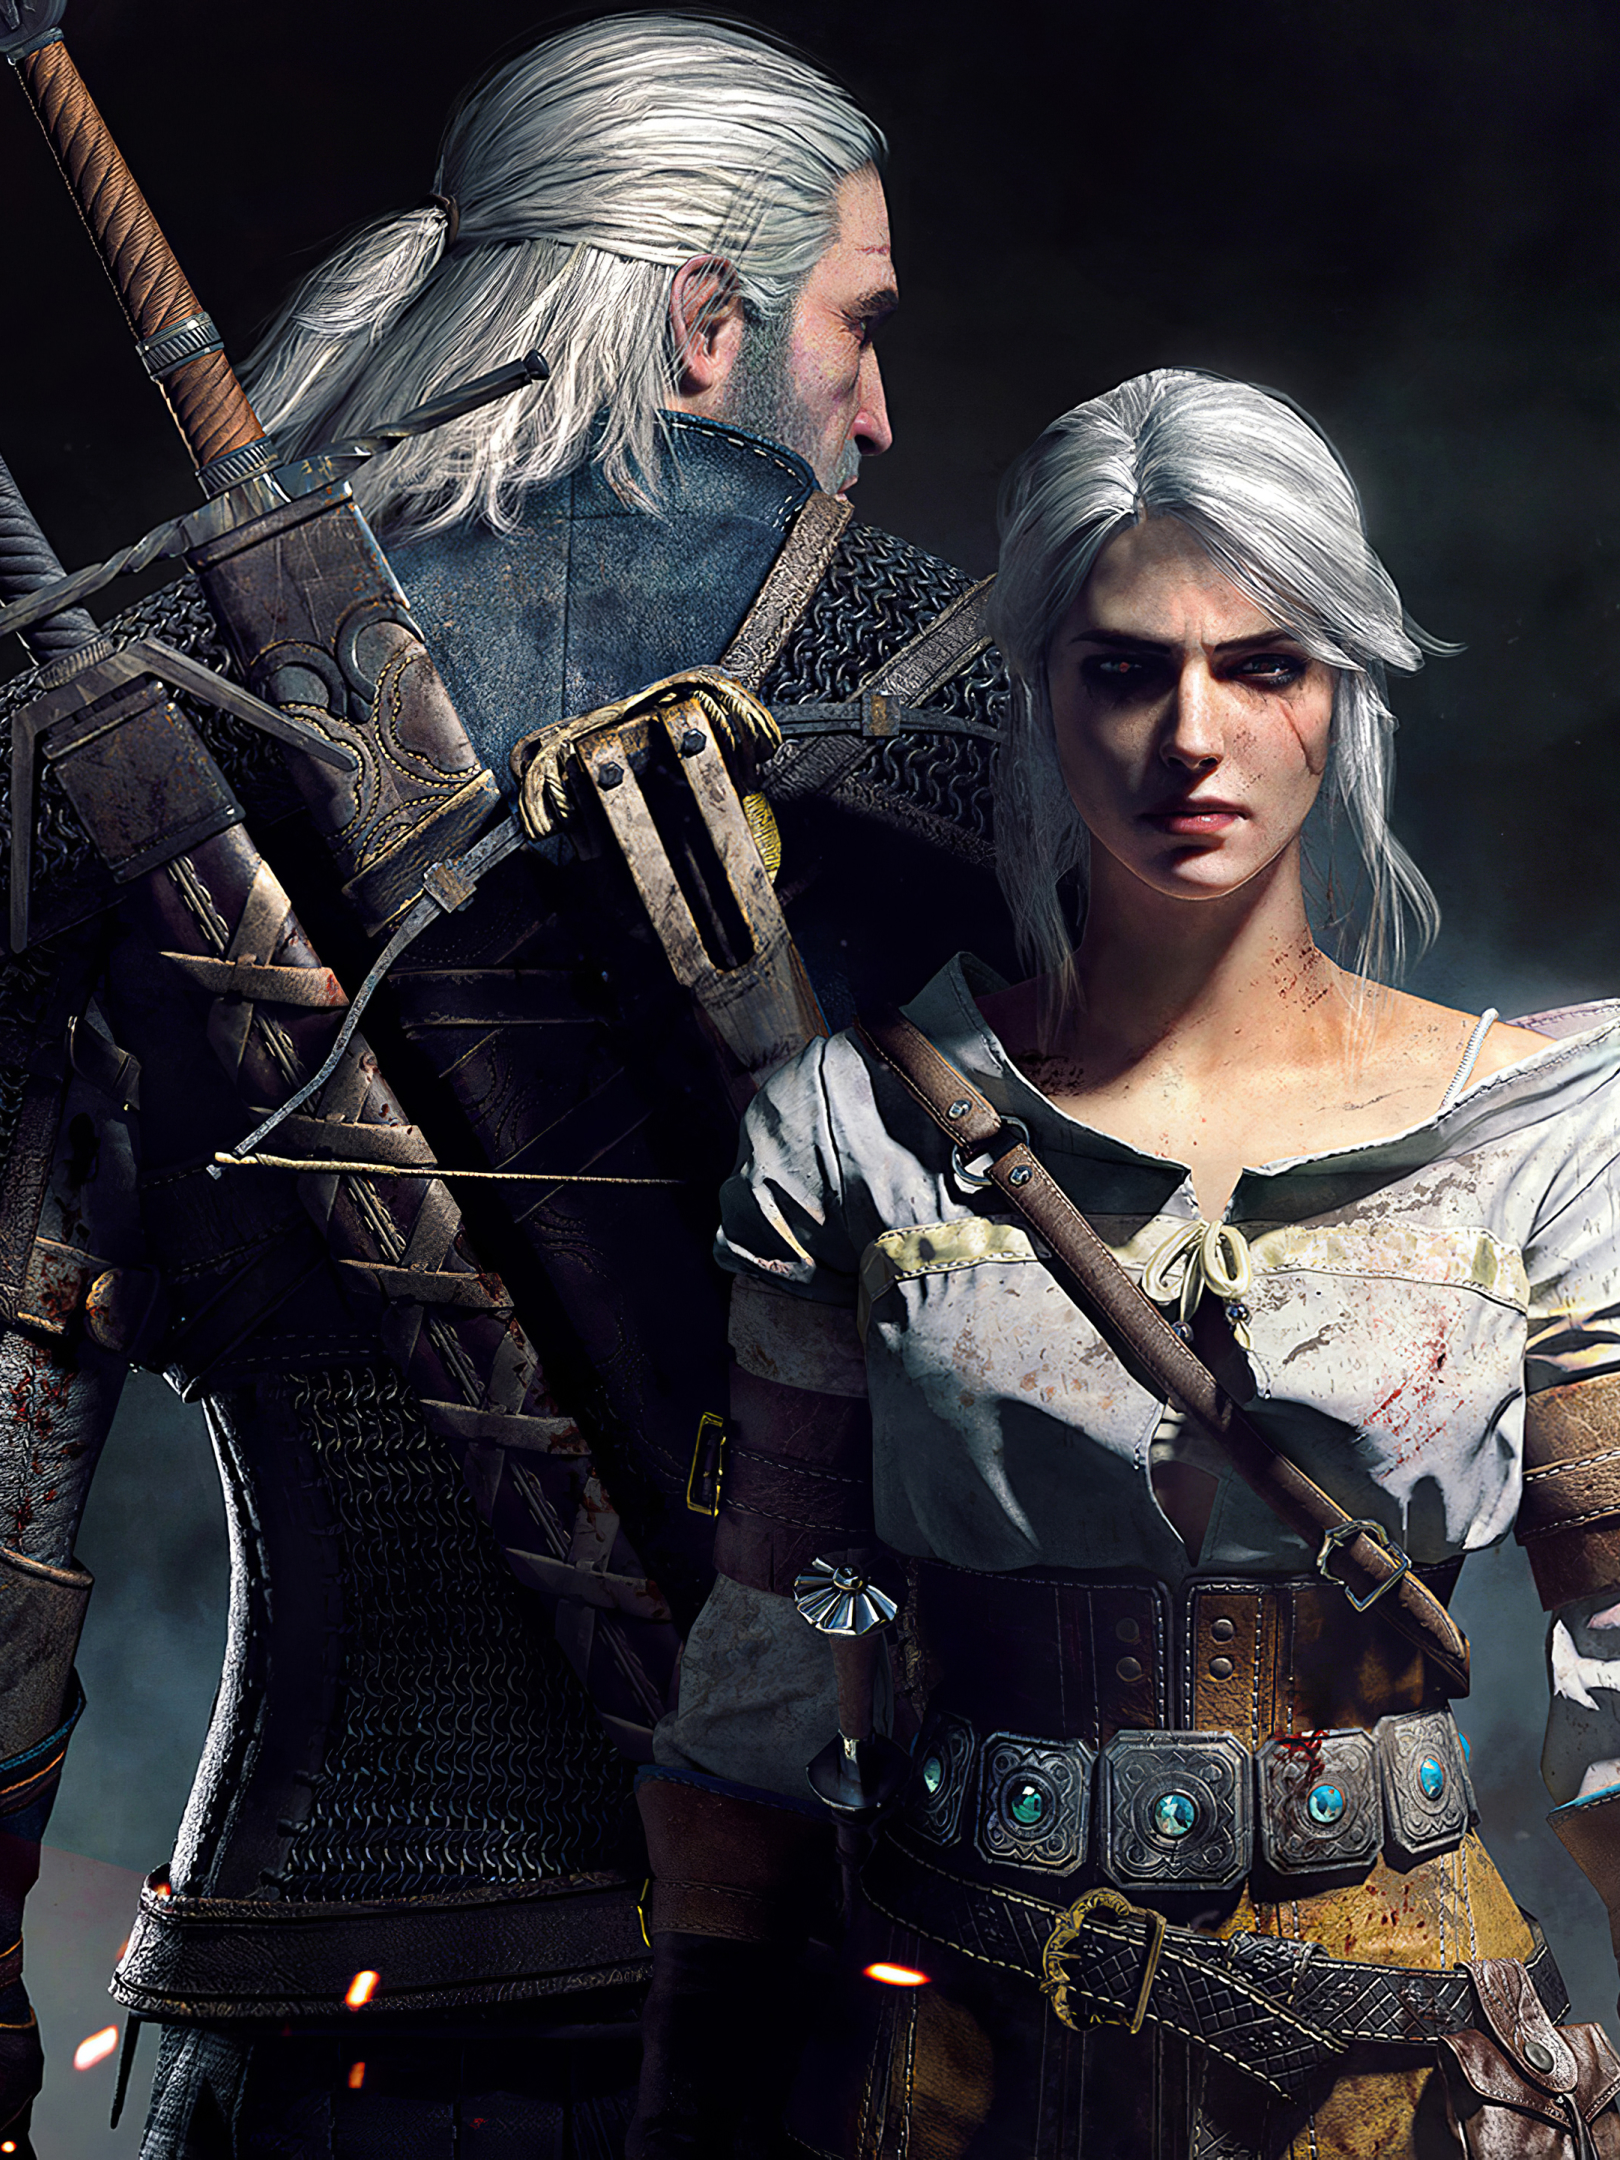 1620x2160 Geralt And Ciri The Witcher 3 Game Poster 1620x2160